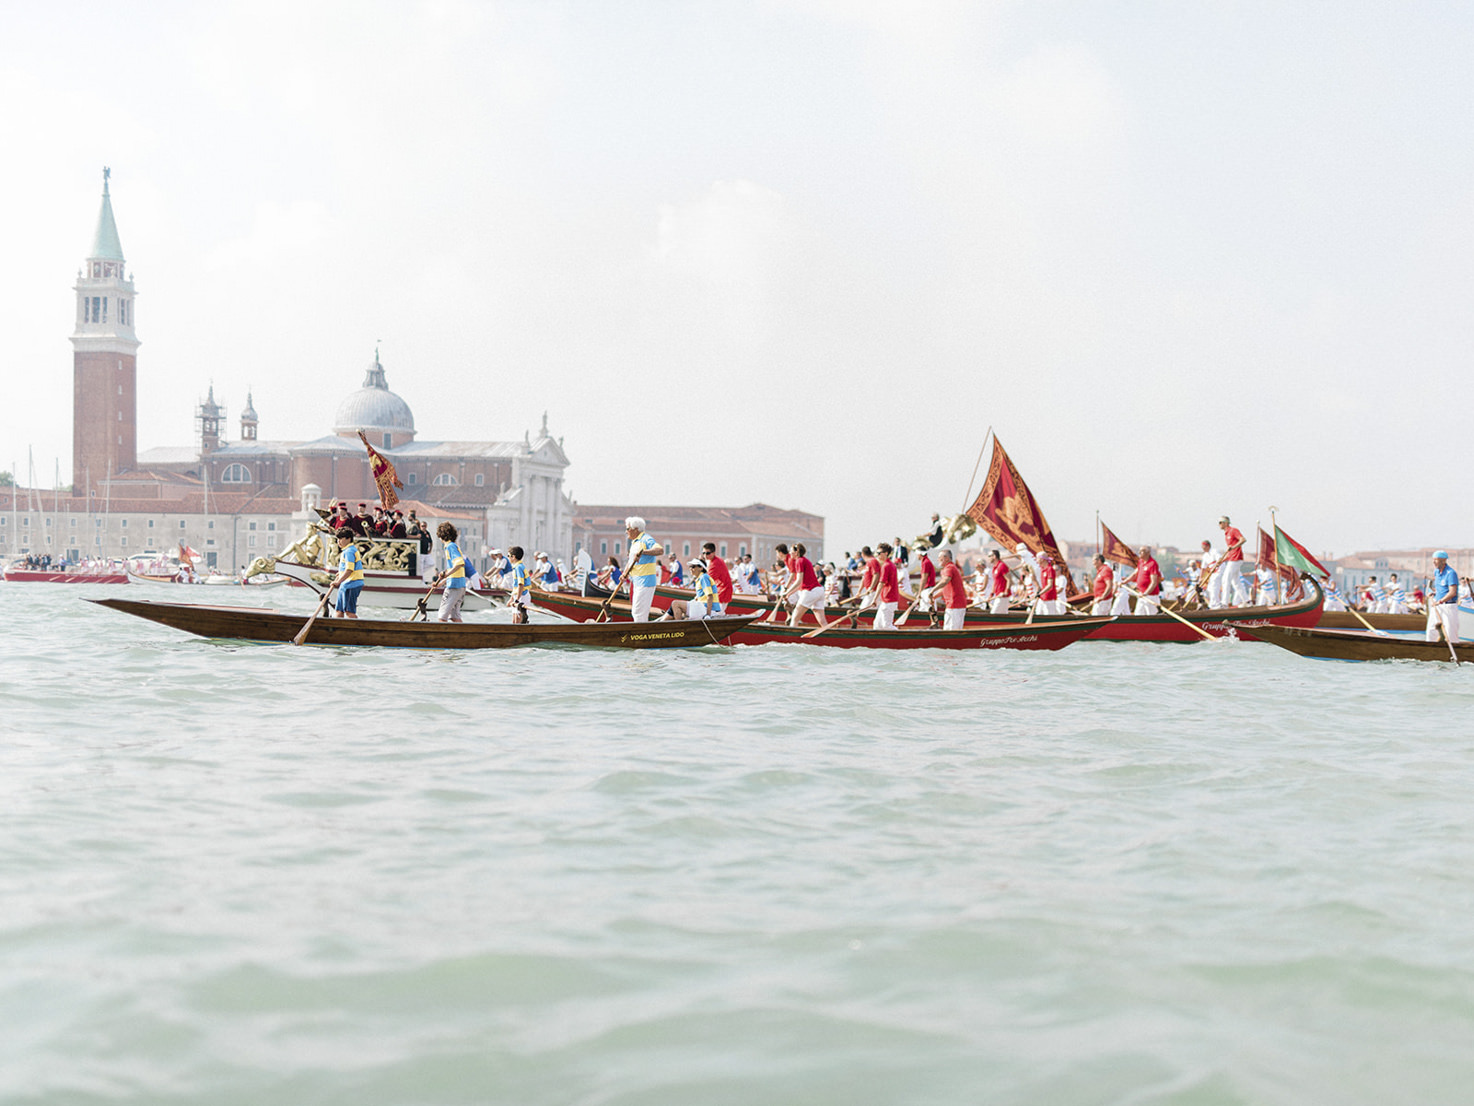 Historical boats in Venice